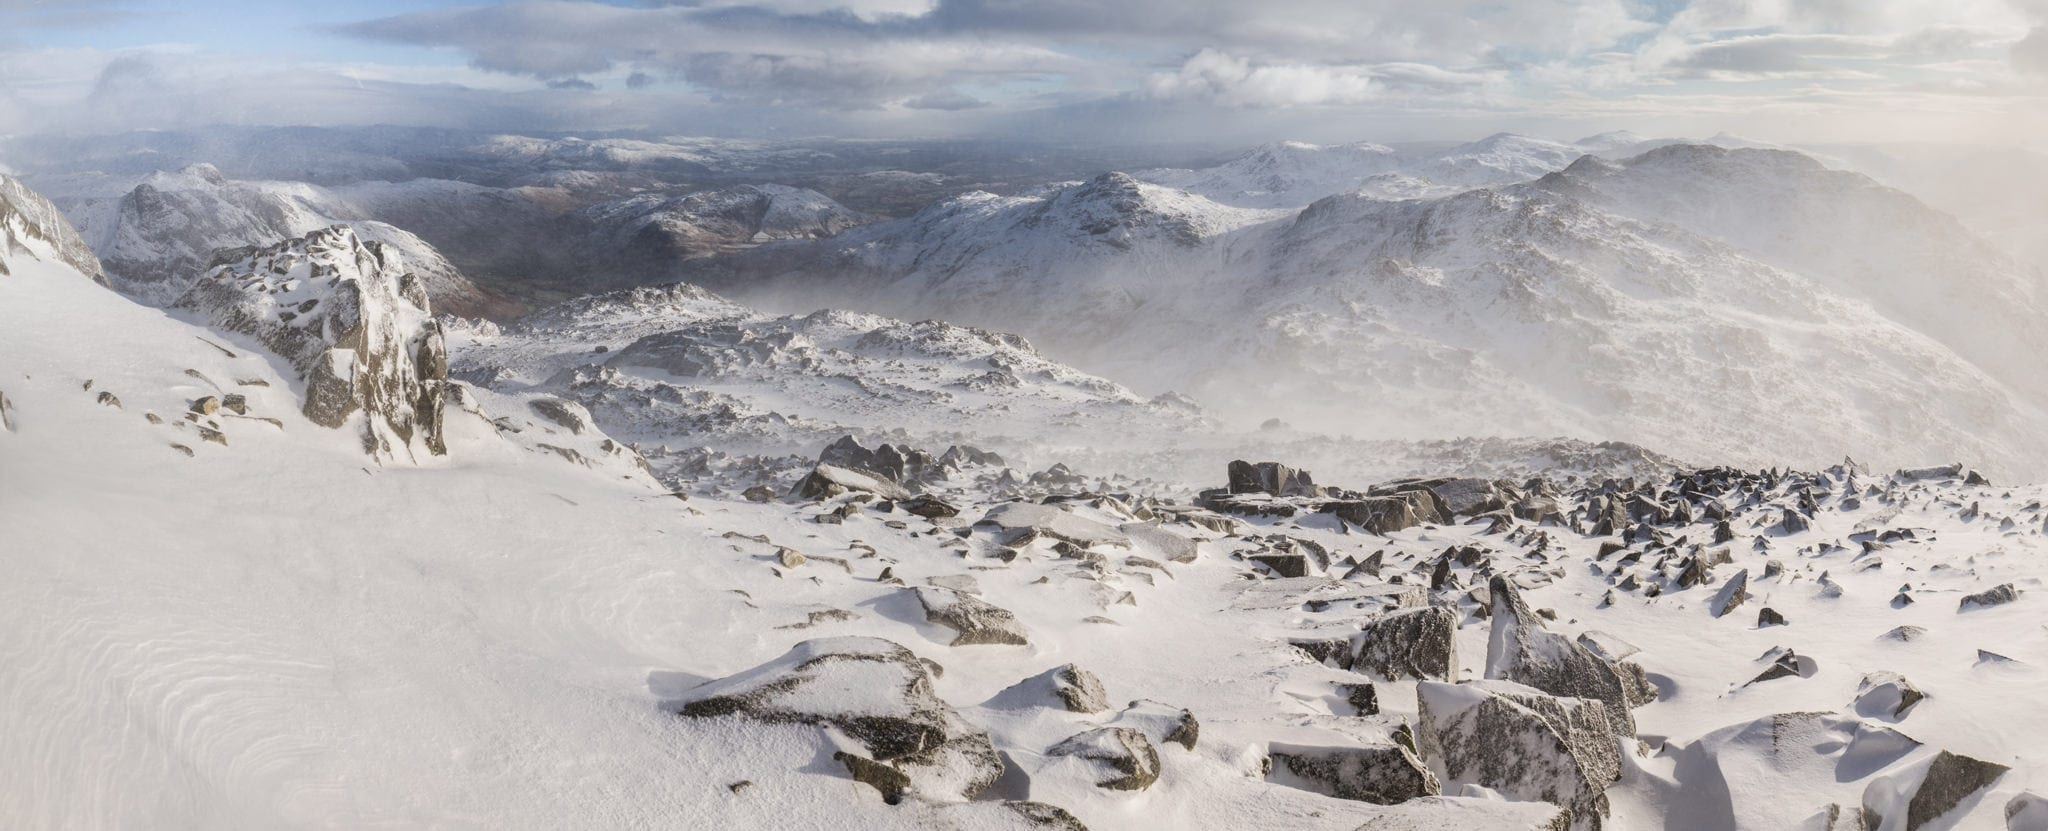 Looking To Crinkle Crags in Winter - Lake District Photography Workshops